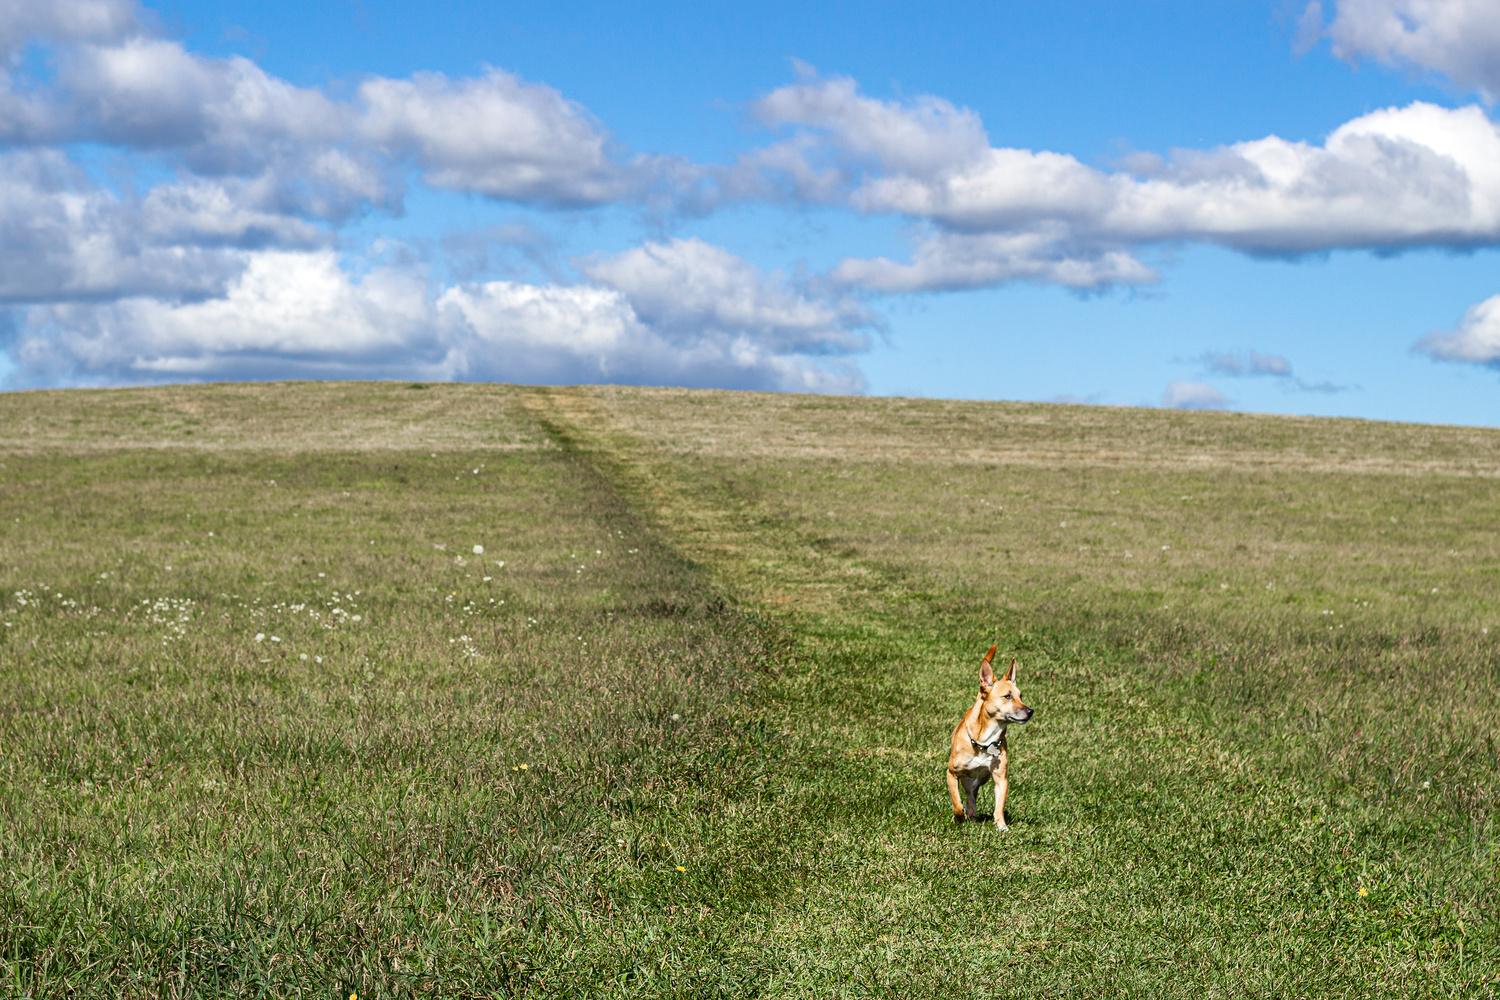 Lola on the Trail by Matthew Smith